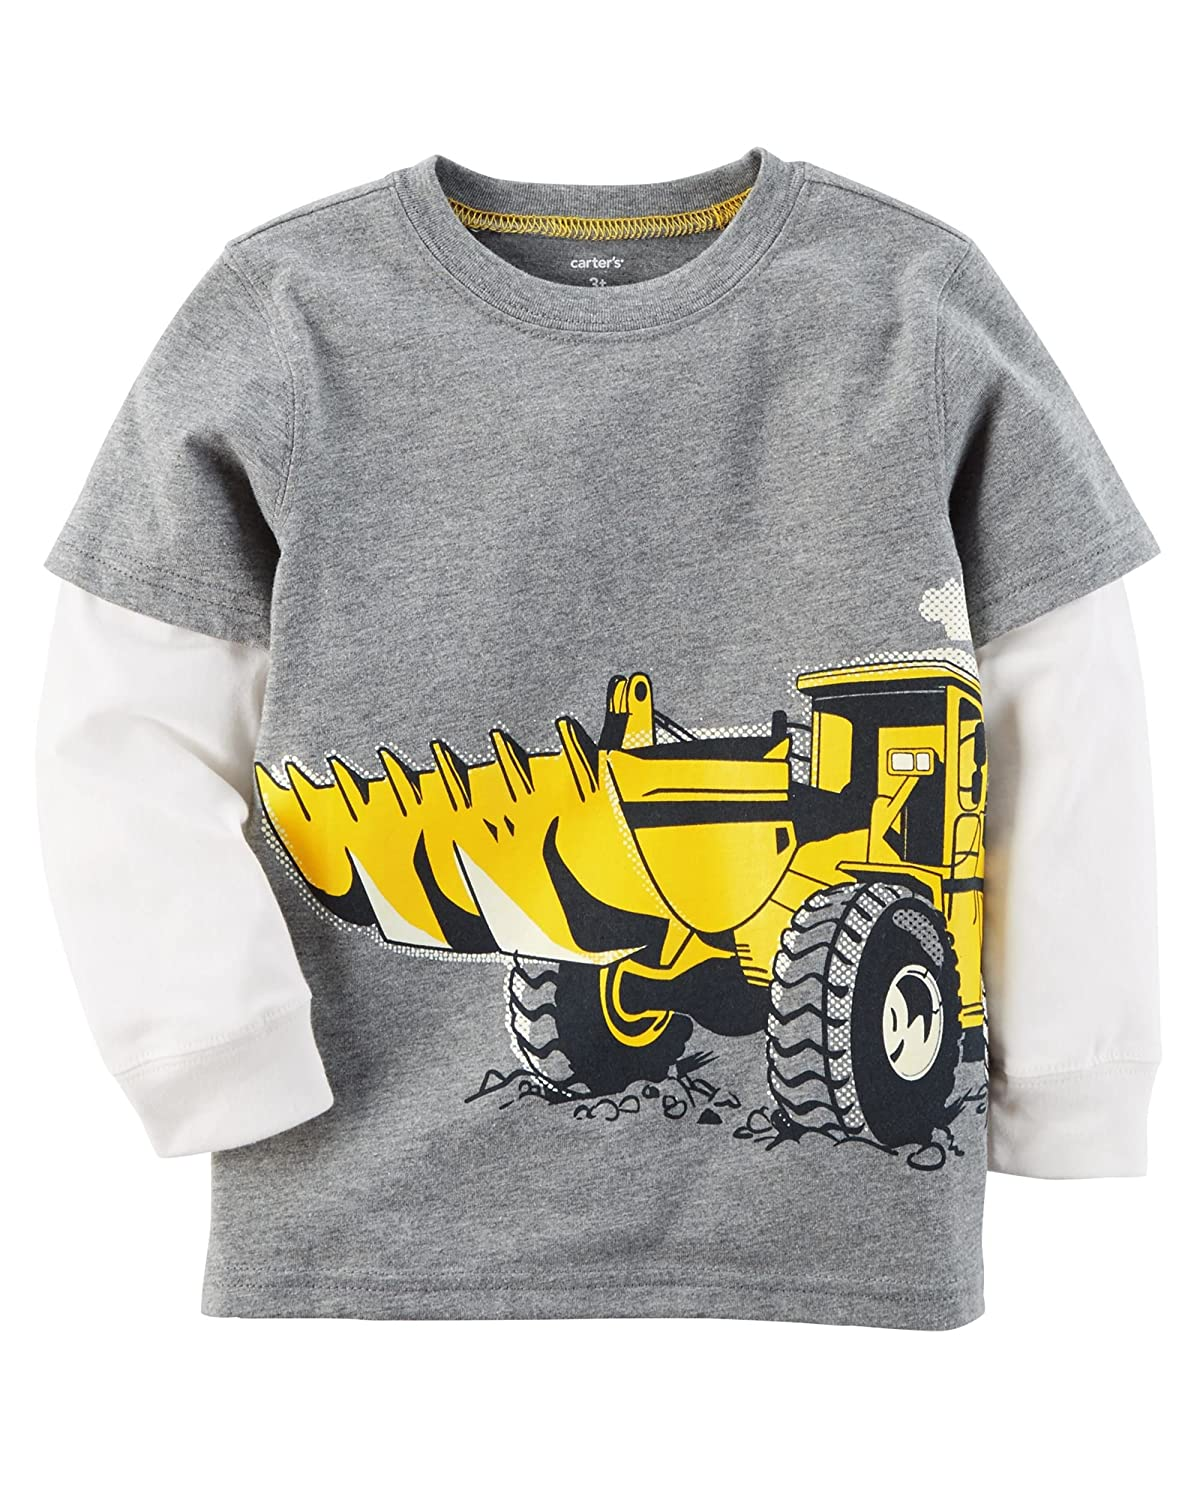 Carter's Boys' 12M-8 Long Sleeve Layered-Look Tee